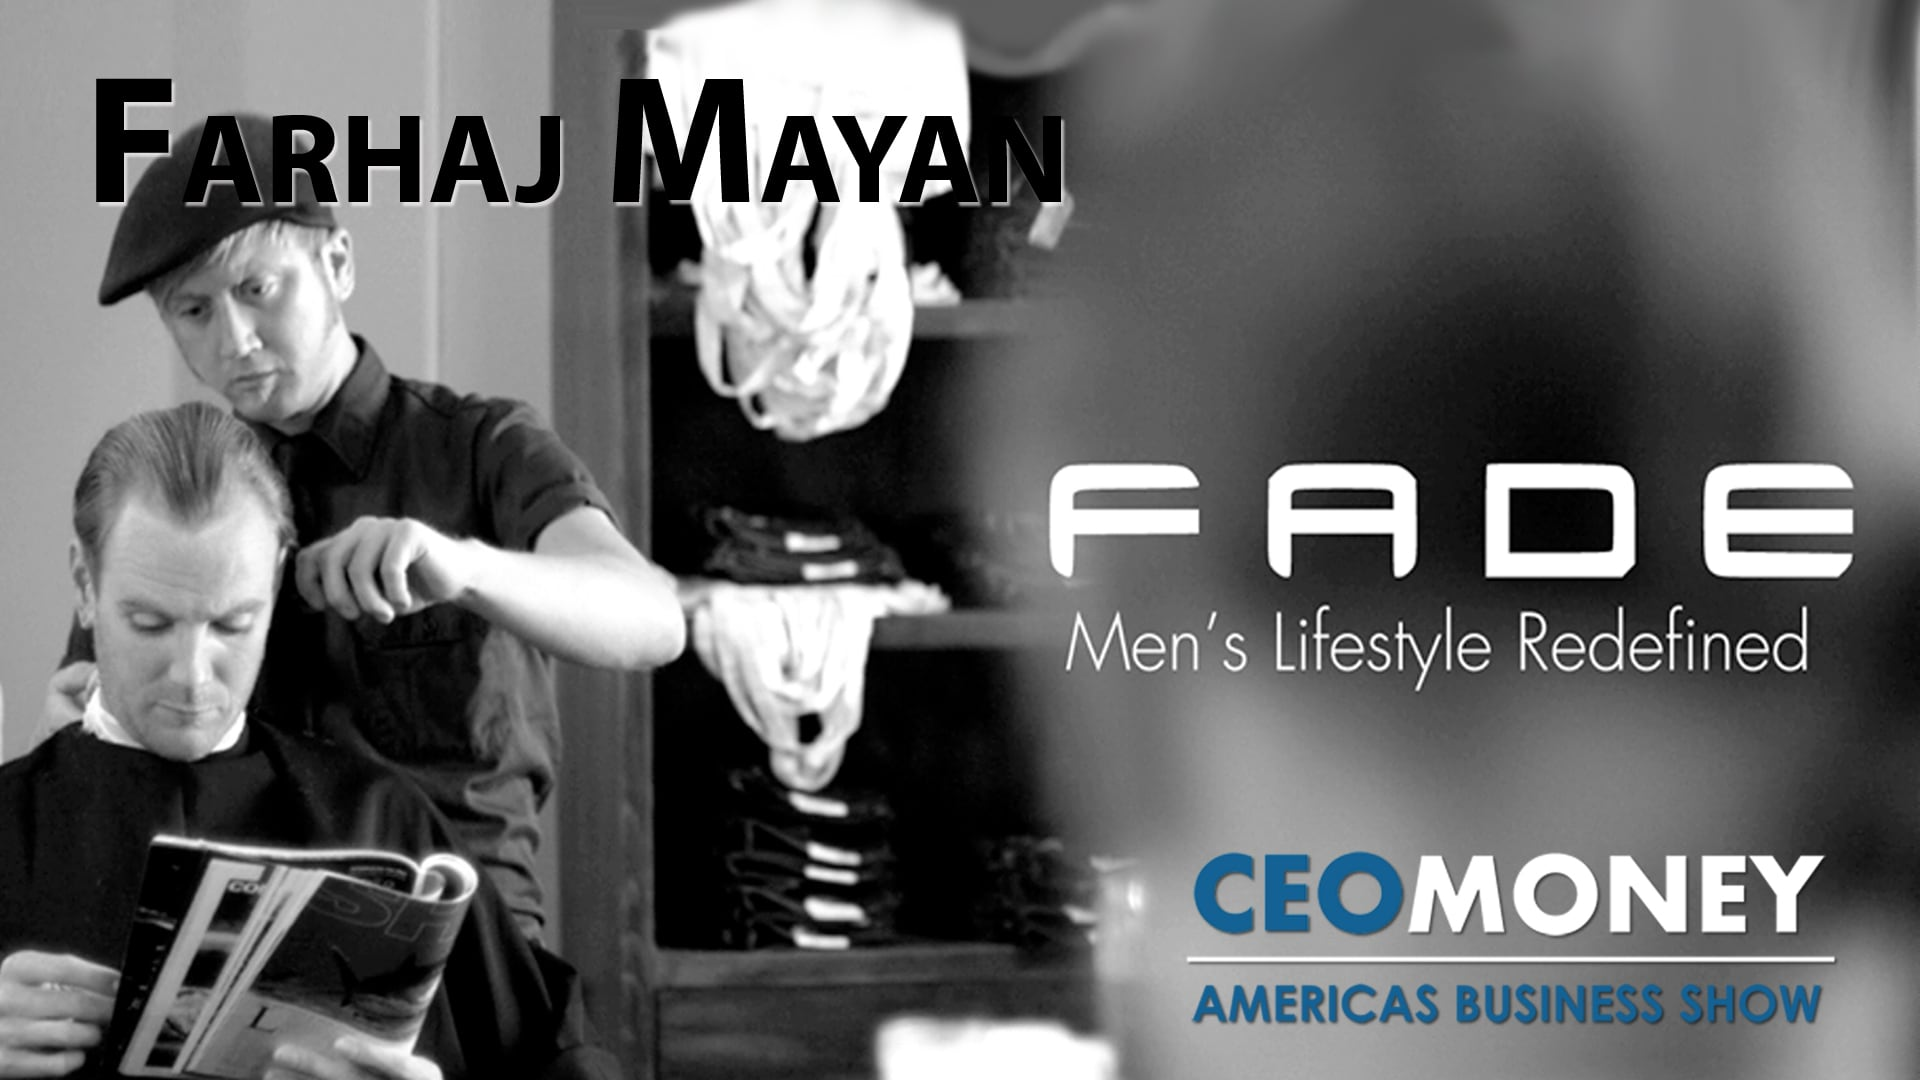 Farhaj Mayan created FADE to use technology to redefine men's grooming